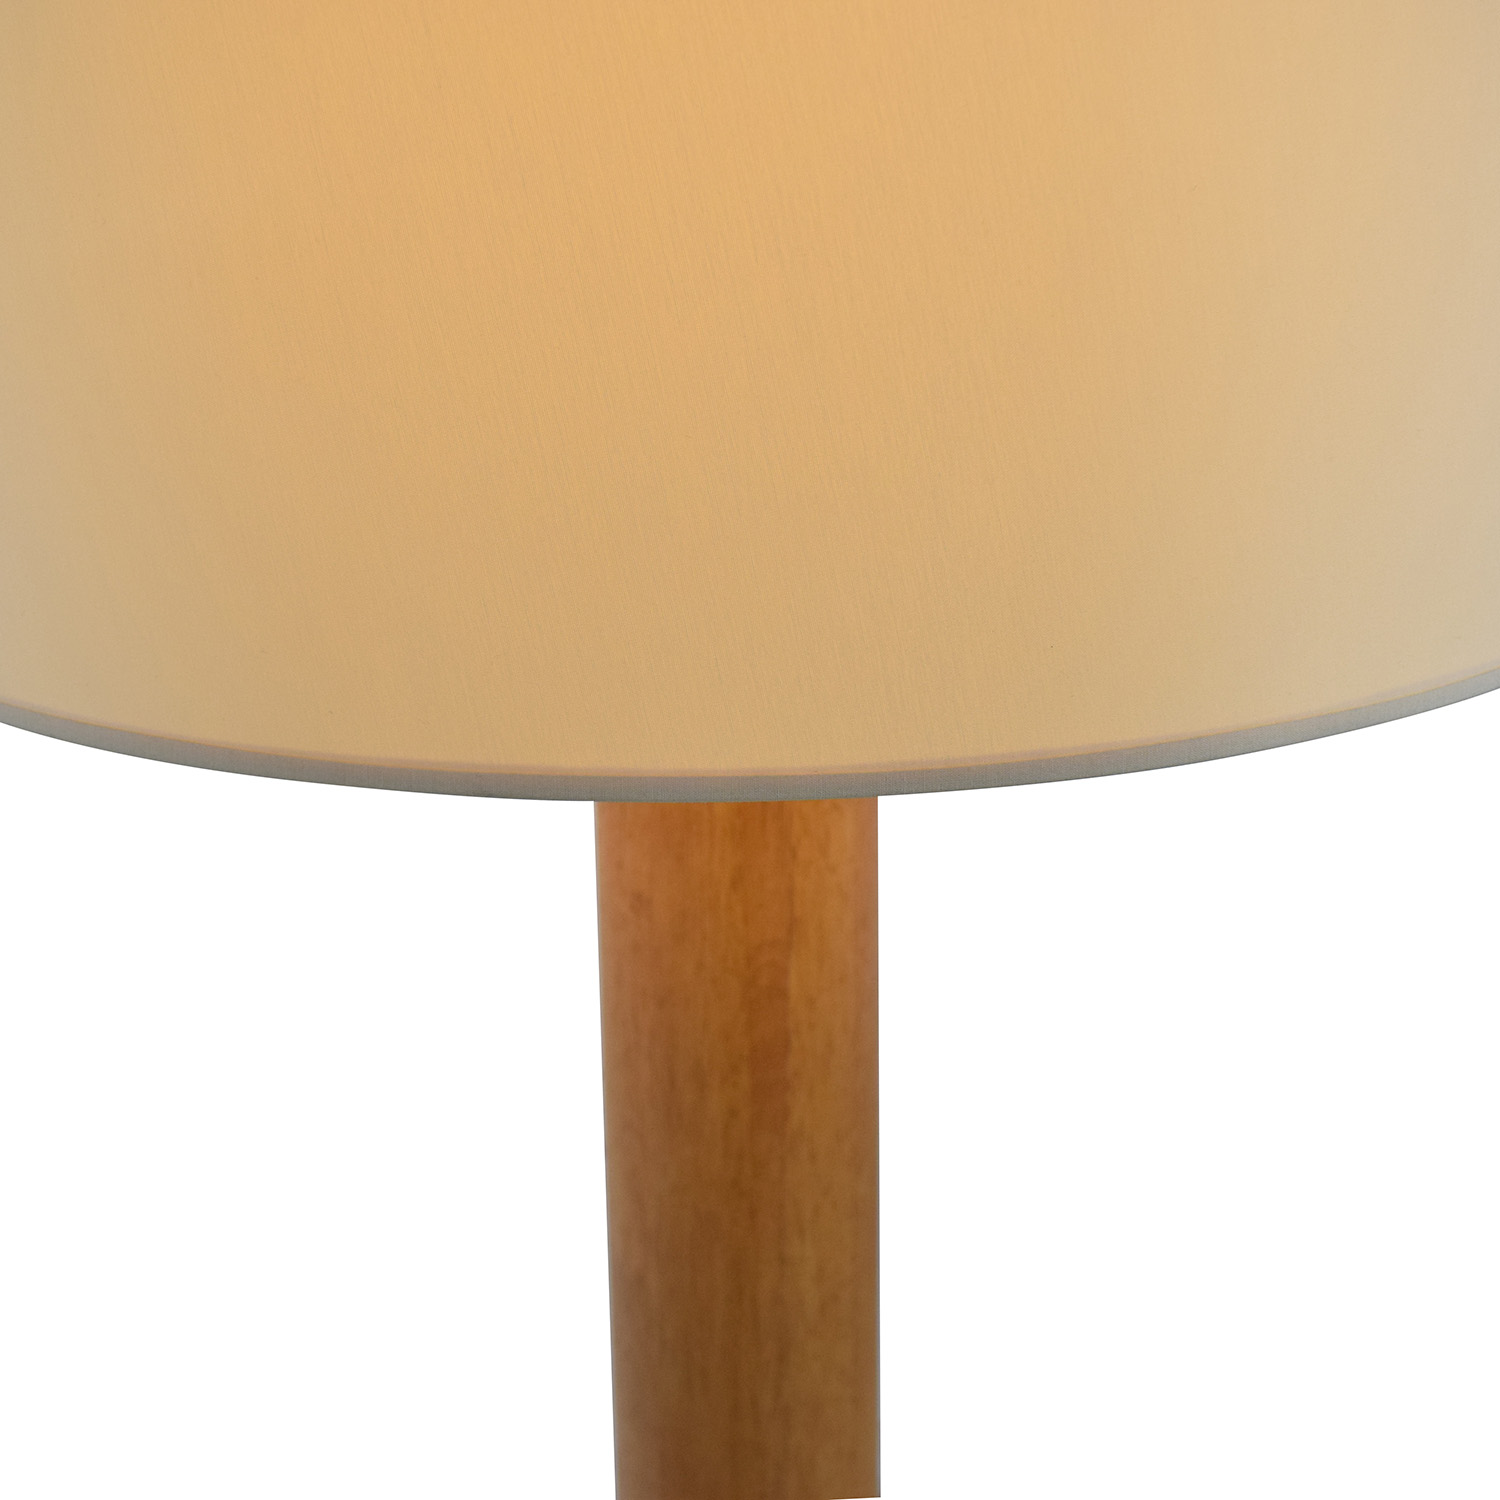 Lamps Online 16 Off Room Board Room Board Floor Lamp Decor